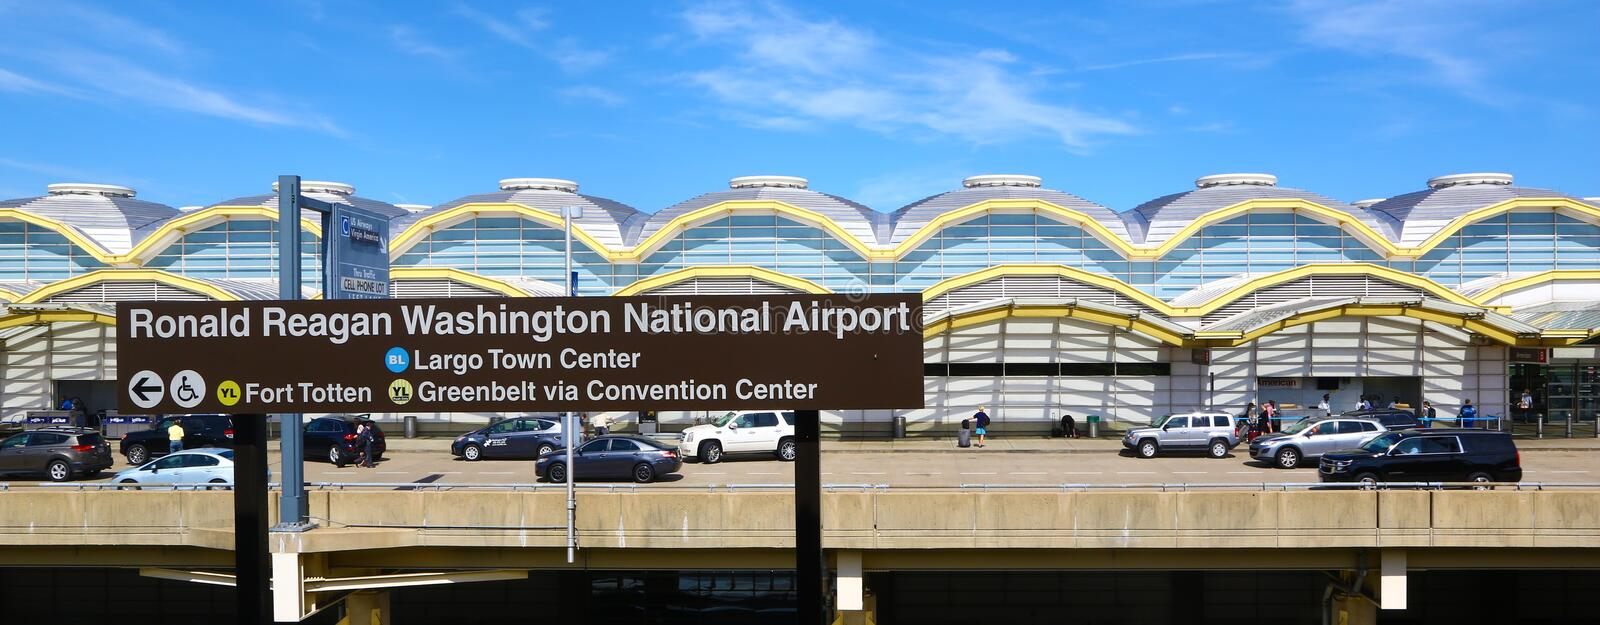 Nationaler Flughafen Ronald- Reaganwashington stockbild